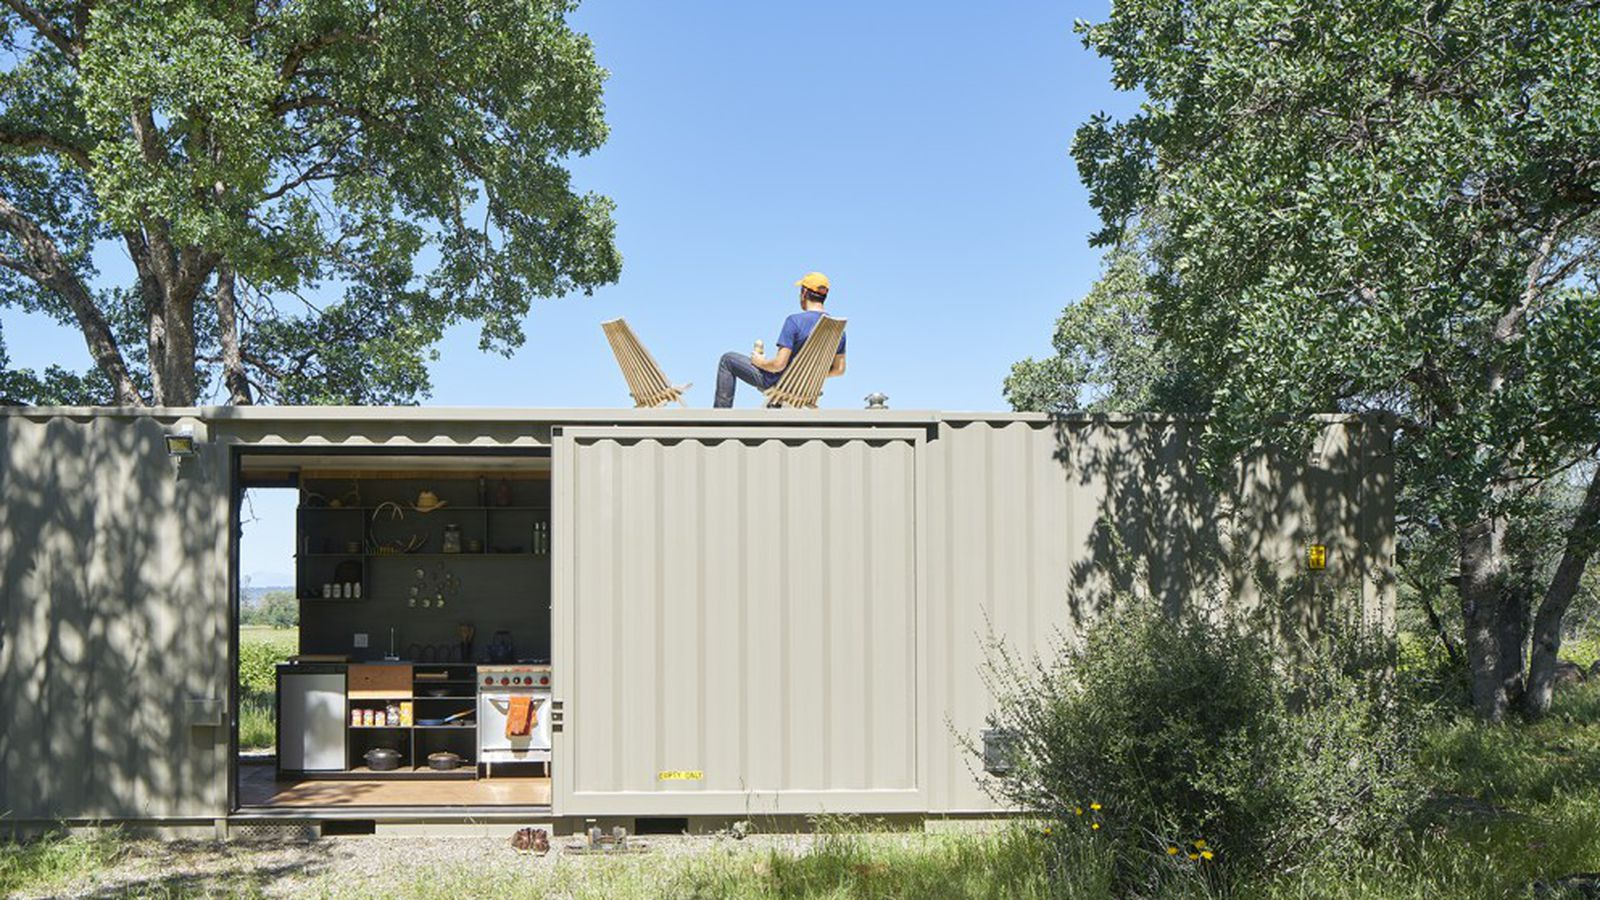 Shipping container cabin goes off grid in california wilderness curbed - Shipping container homes chicago ...